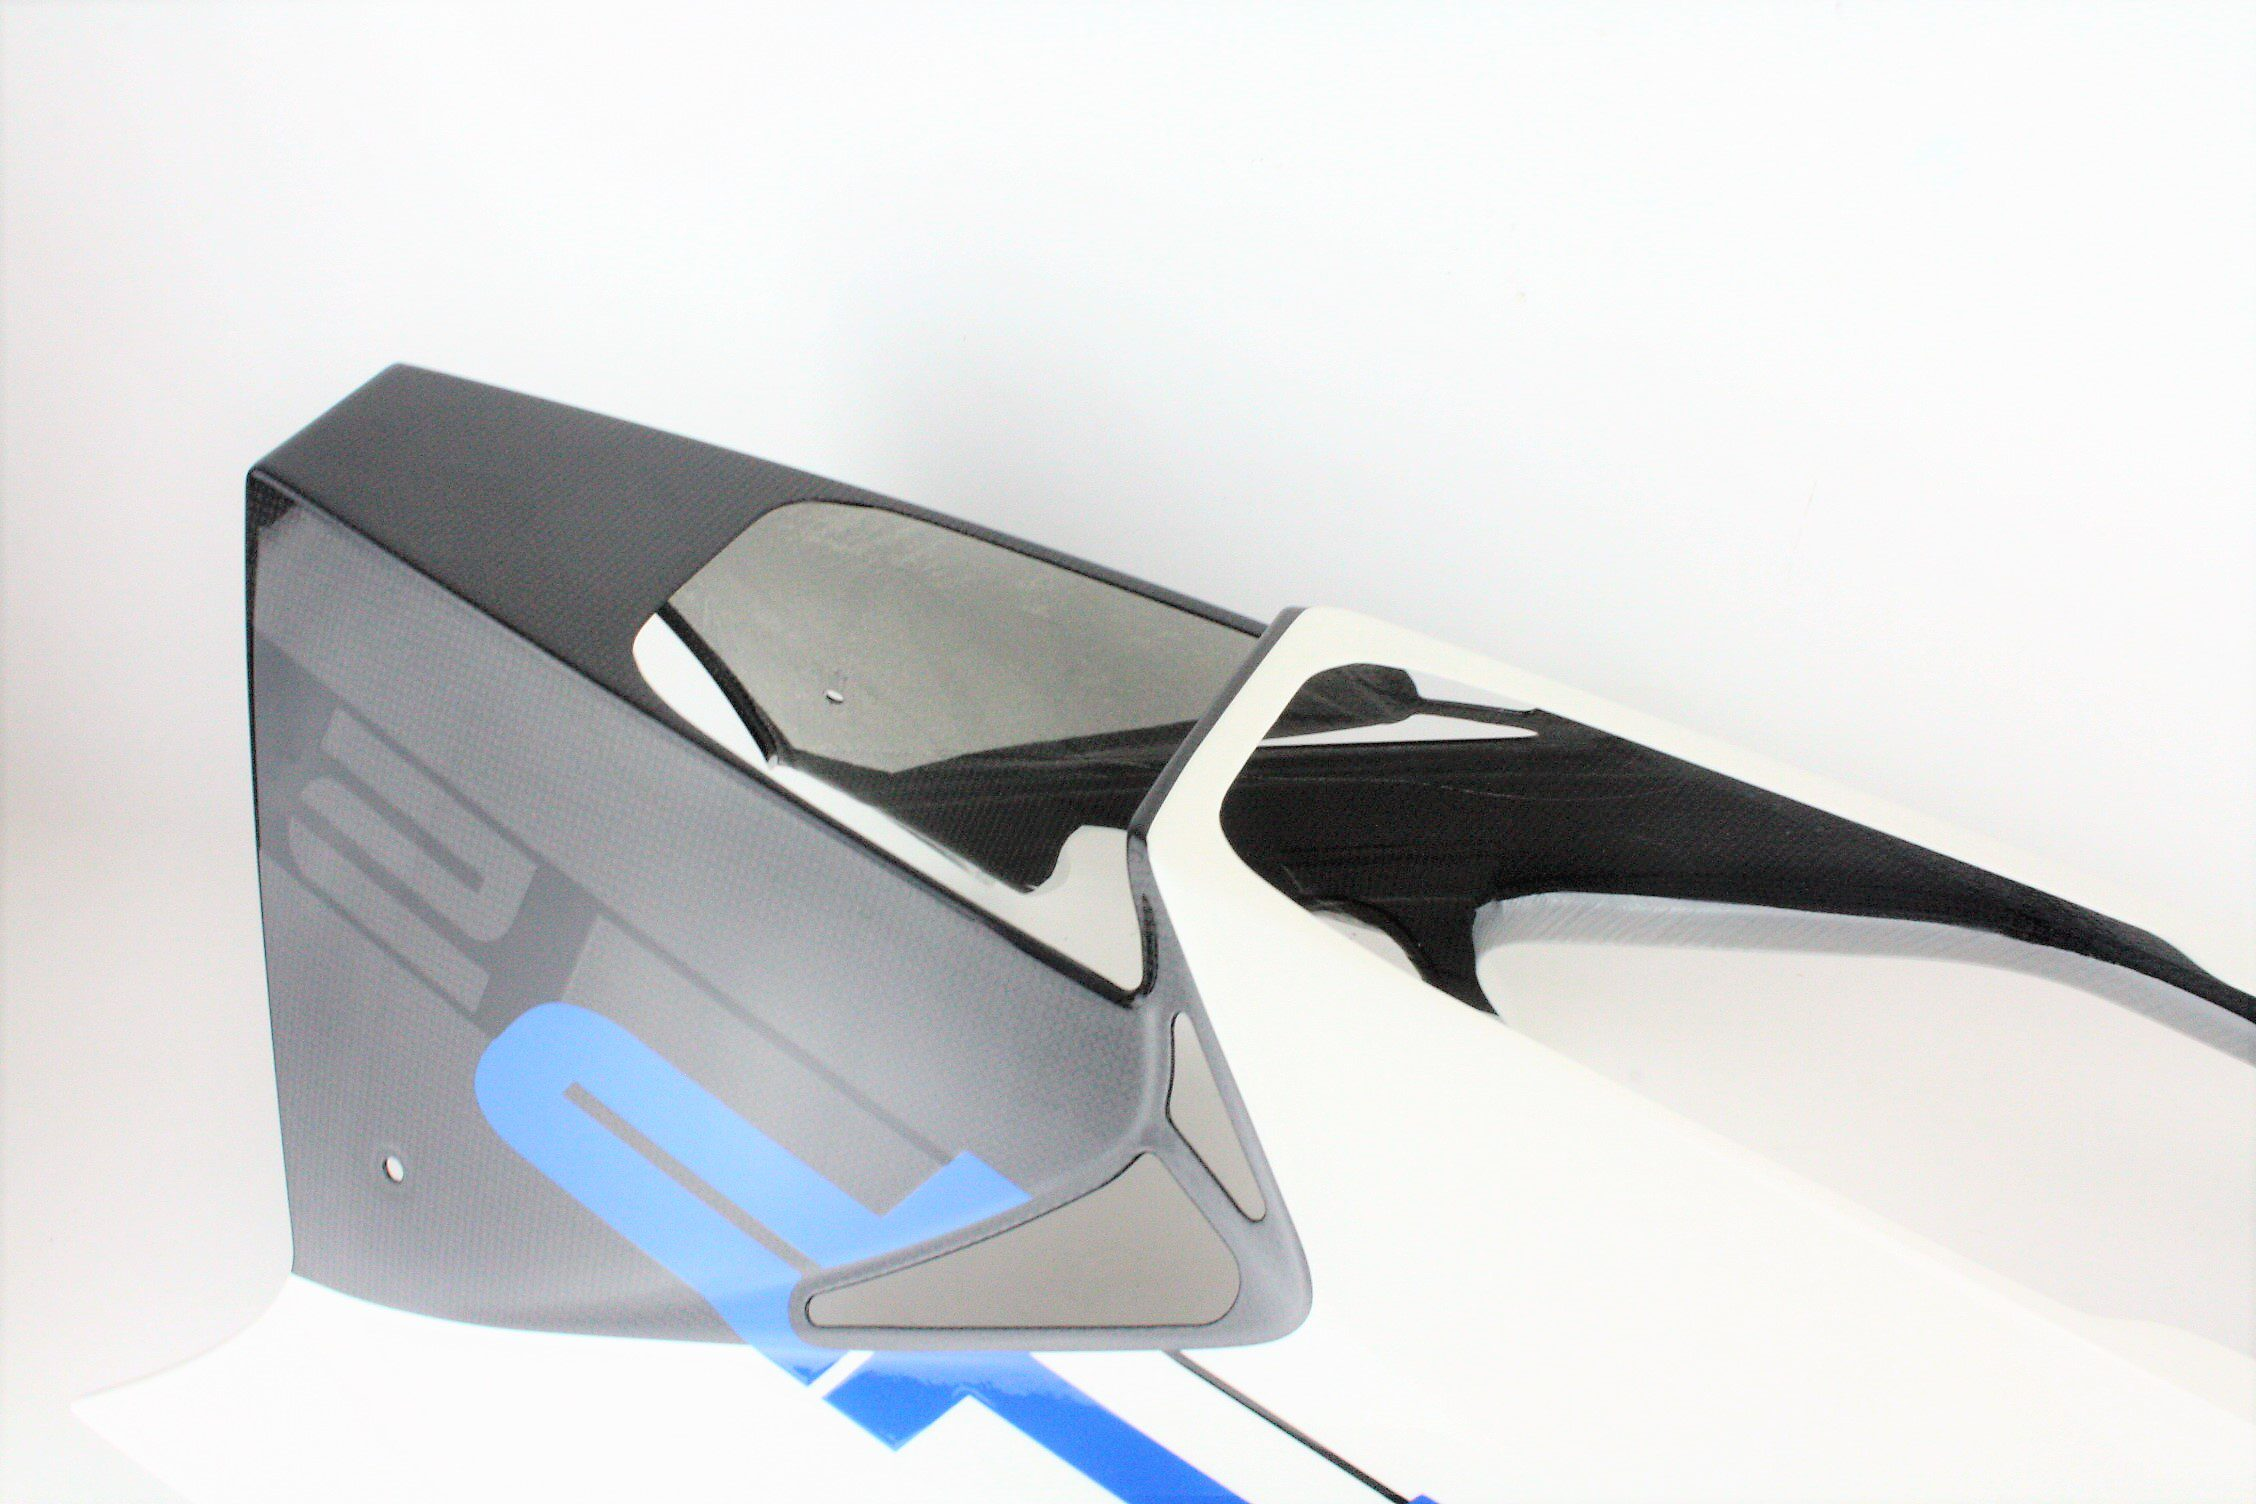 luxury bmw maybach sunglasses news speed top car launches lux collection eyewear cars